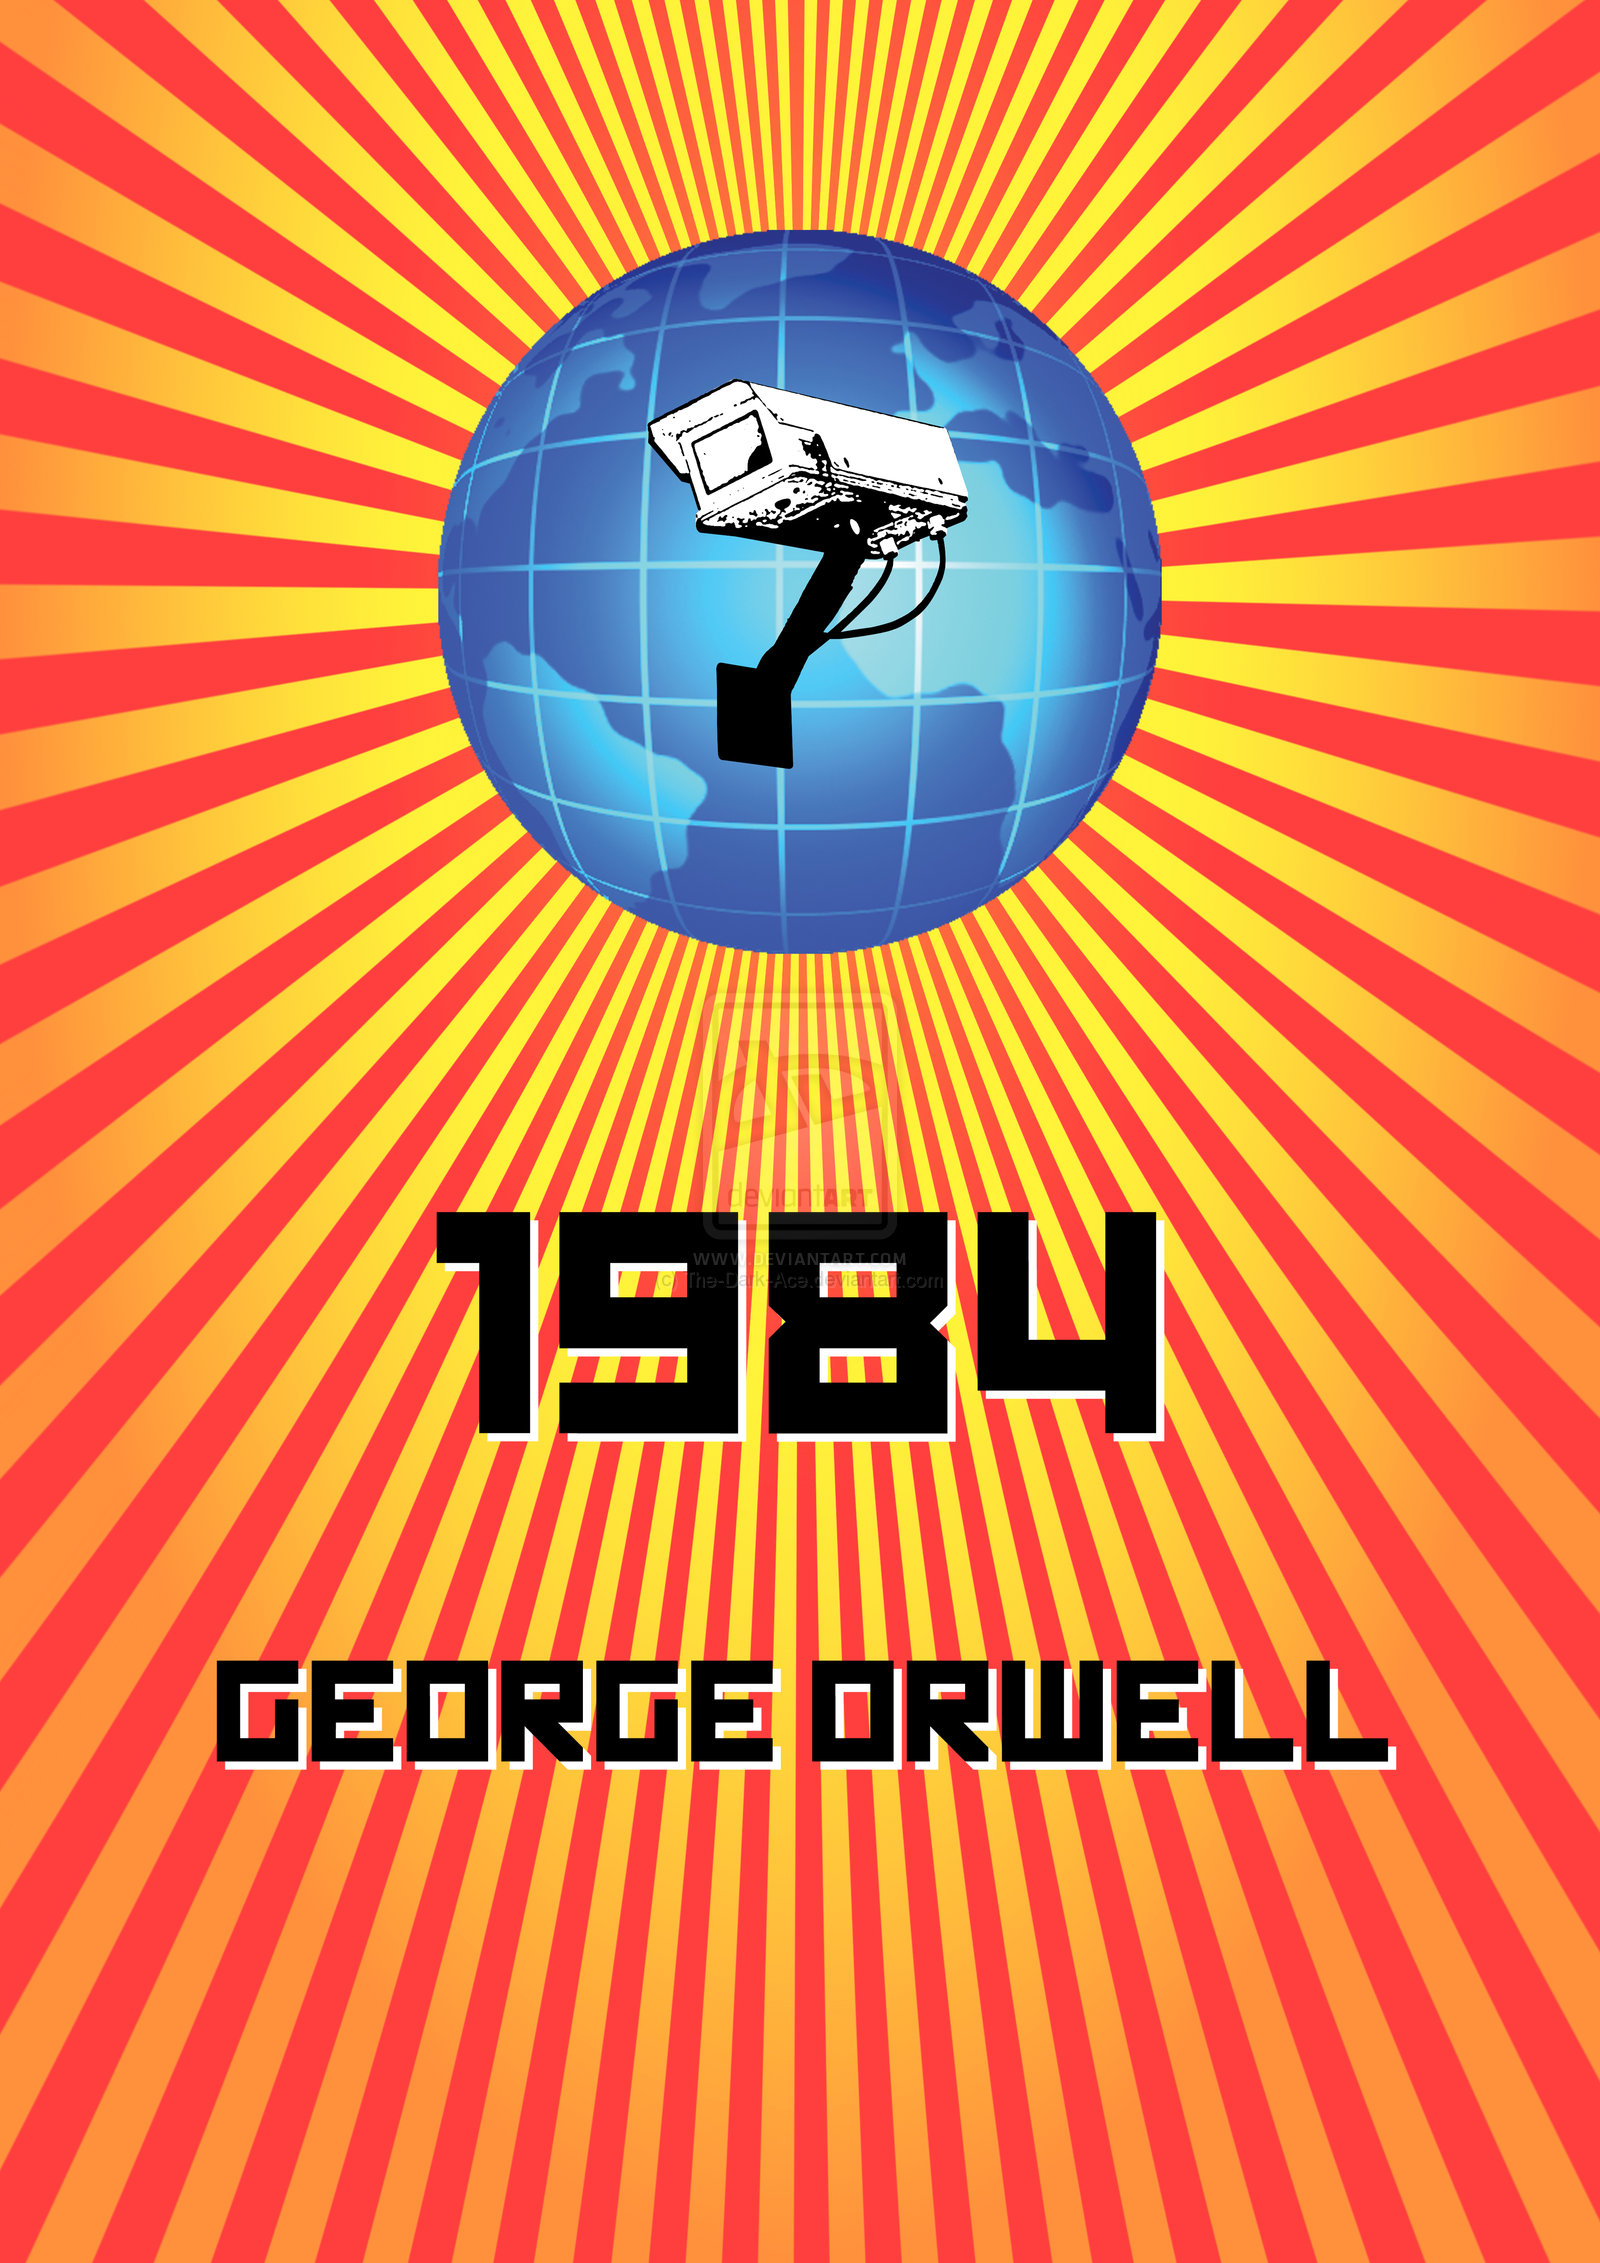 essays on the book 1984 by george orwell